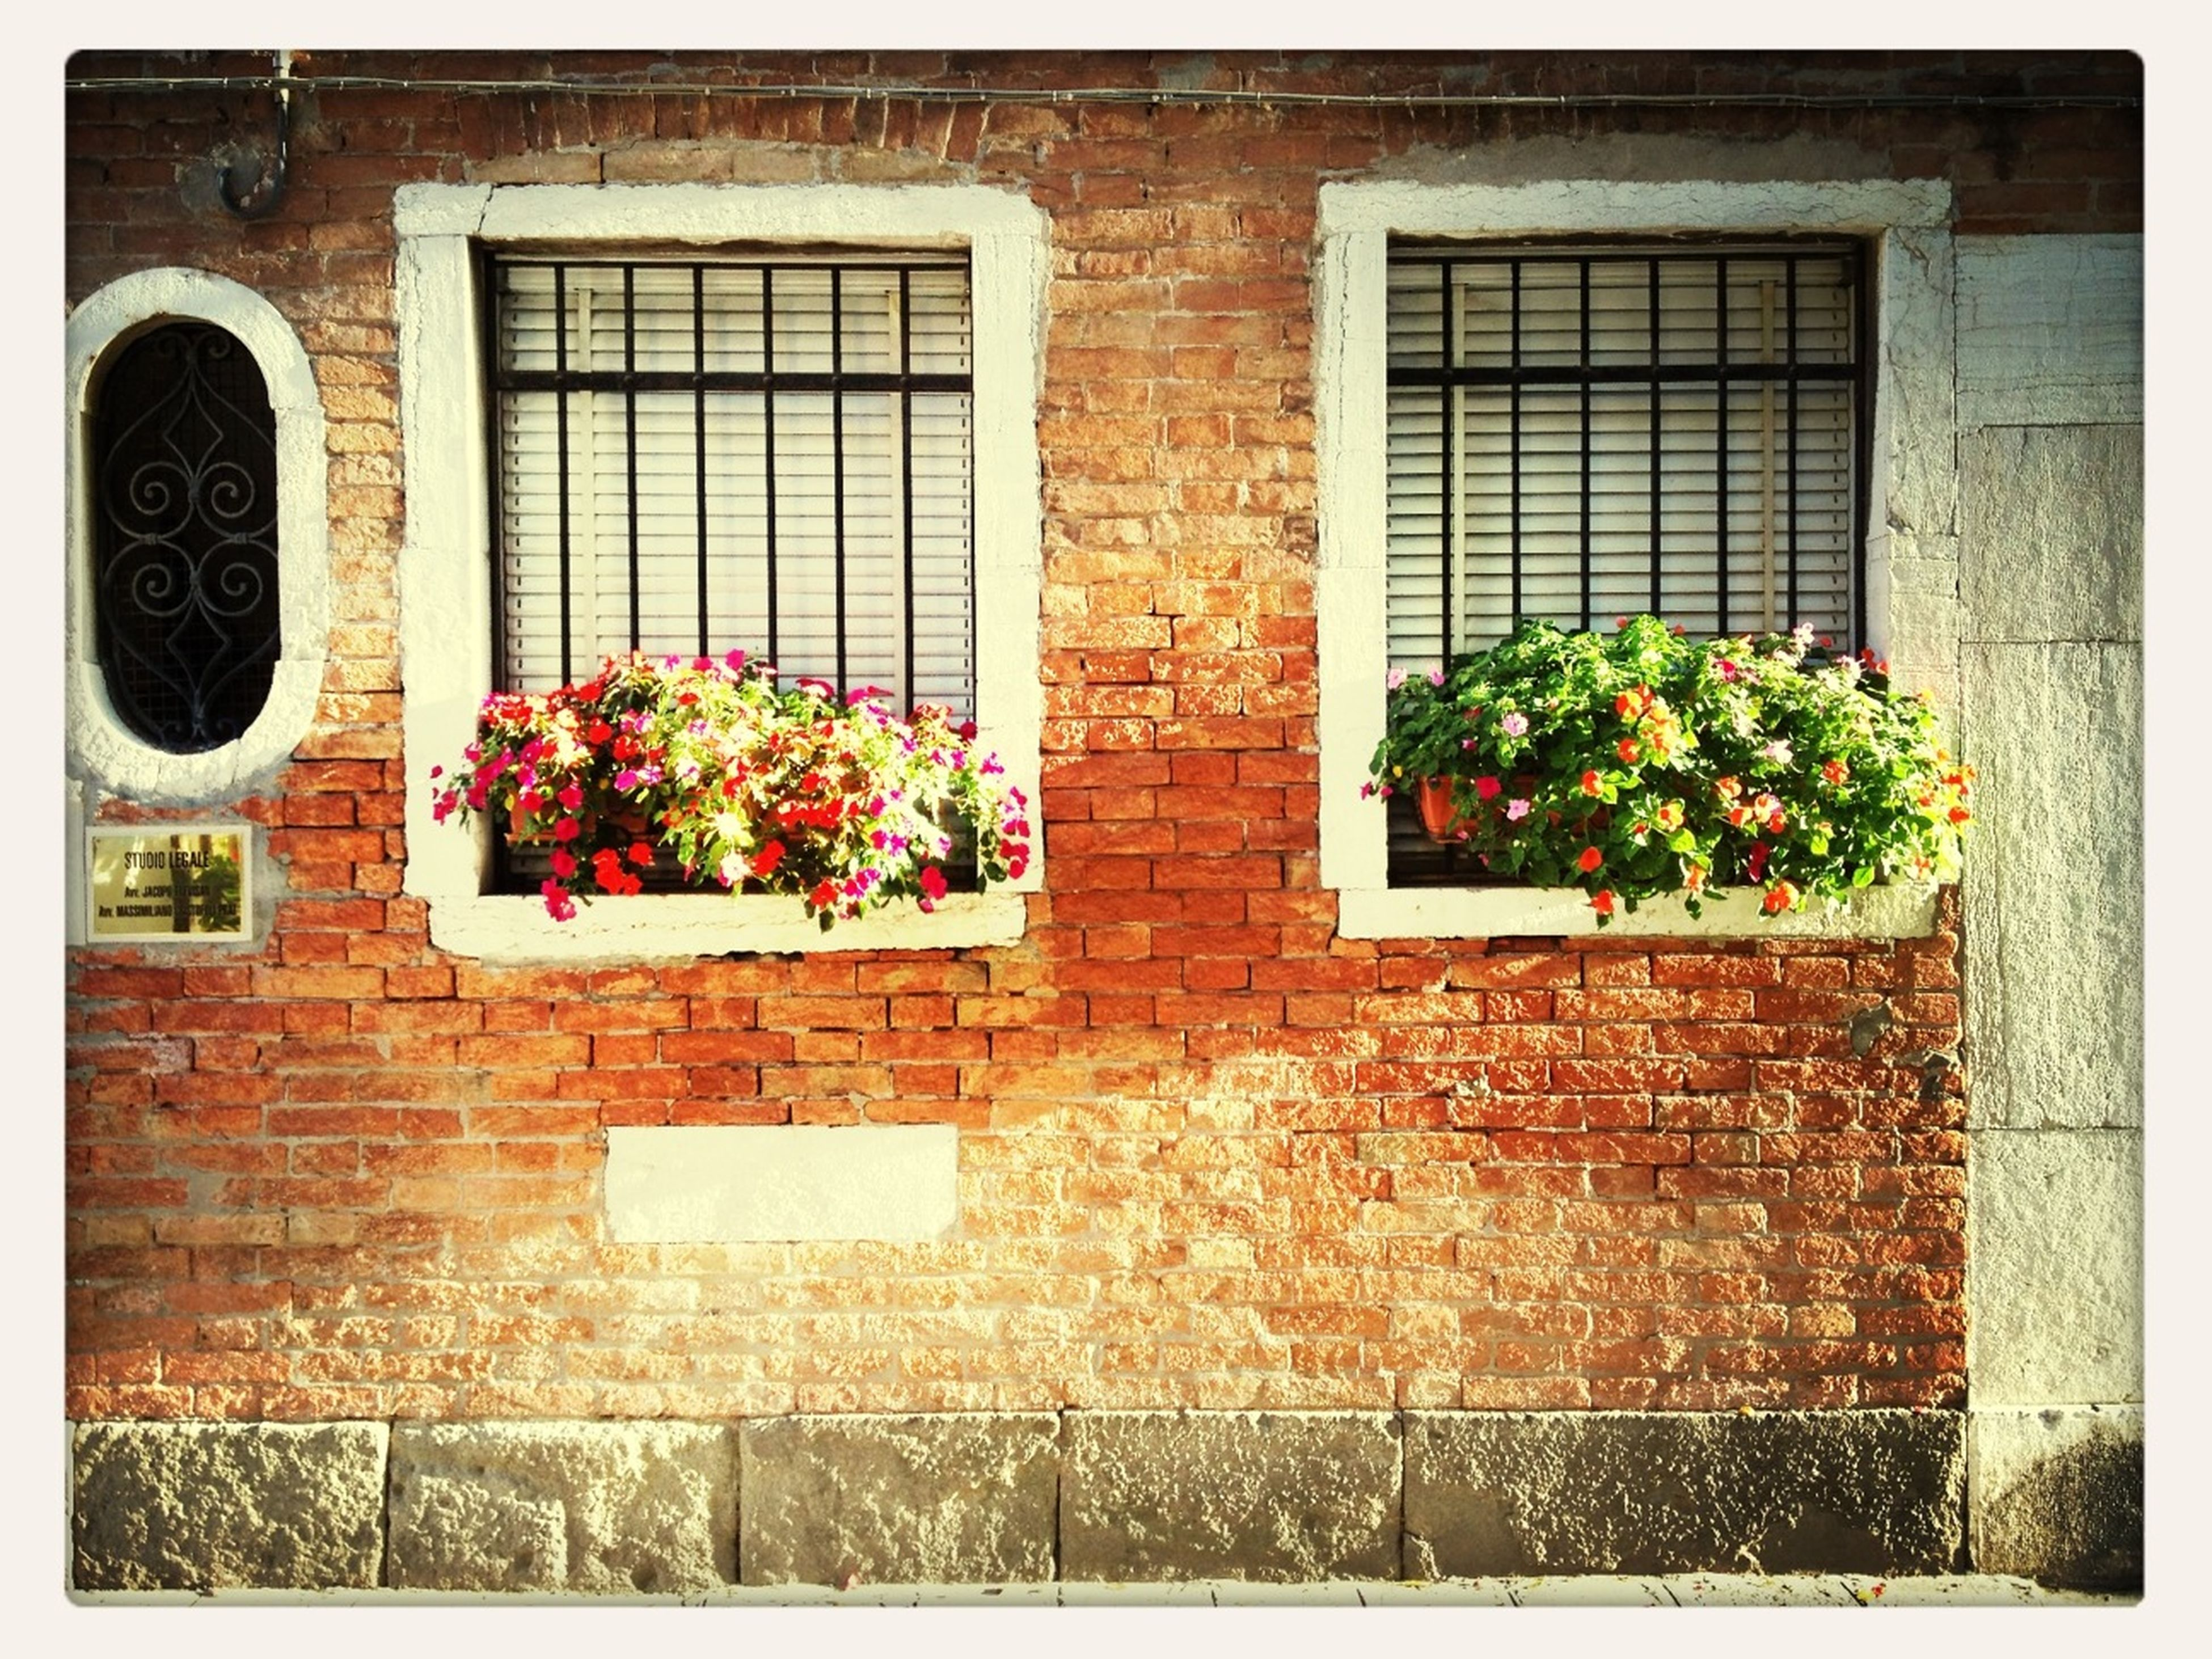 architecture, building exterior, built structure, window, brick wall, transfer print, wall - building feature, plant, wall, auto post production filter, growth, potted plant, house, stone wall, day, outdoors, no people, door, ivy, old